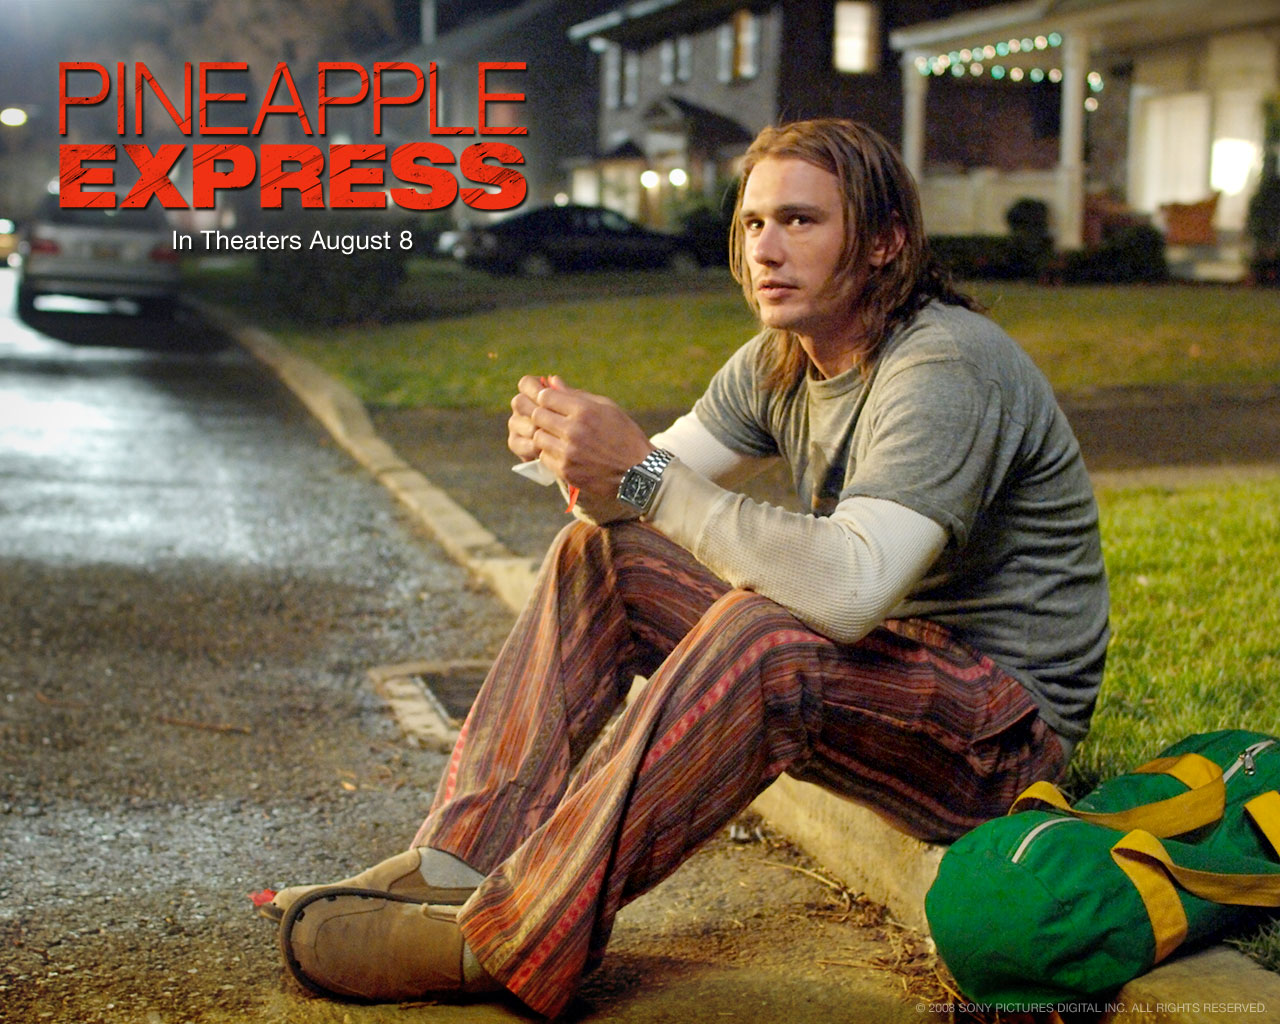 http://4.bp.blogspot.com/-SLSQgbLvoQU/T9lQ0l4Ax5I/AAAAAAAAEZA/I_WuG8wJcu0/s1600/James_Franco_in_Pineapple_Express_Wallpaper_2_1280.jpg